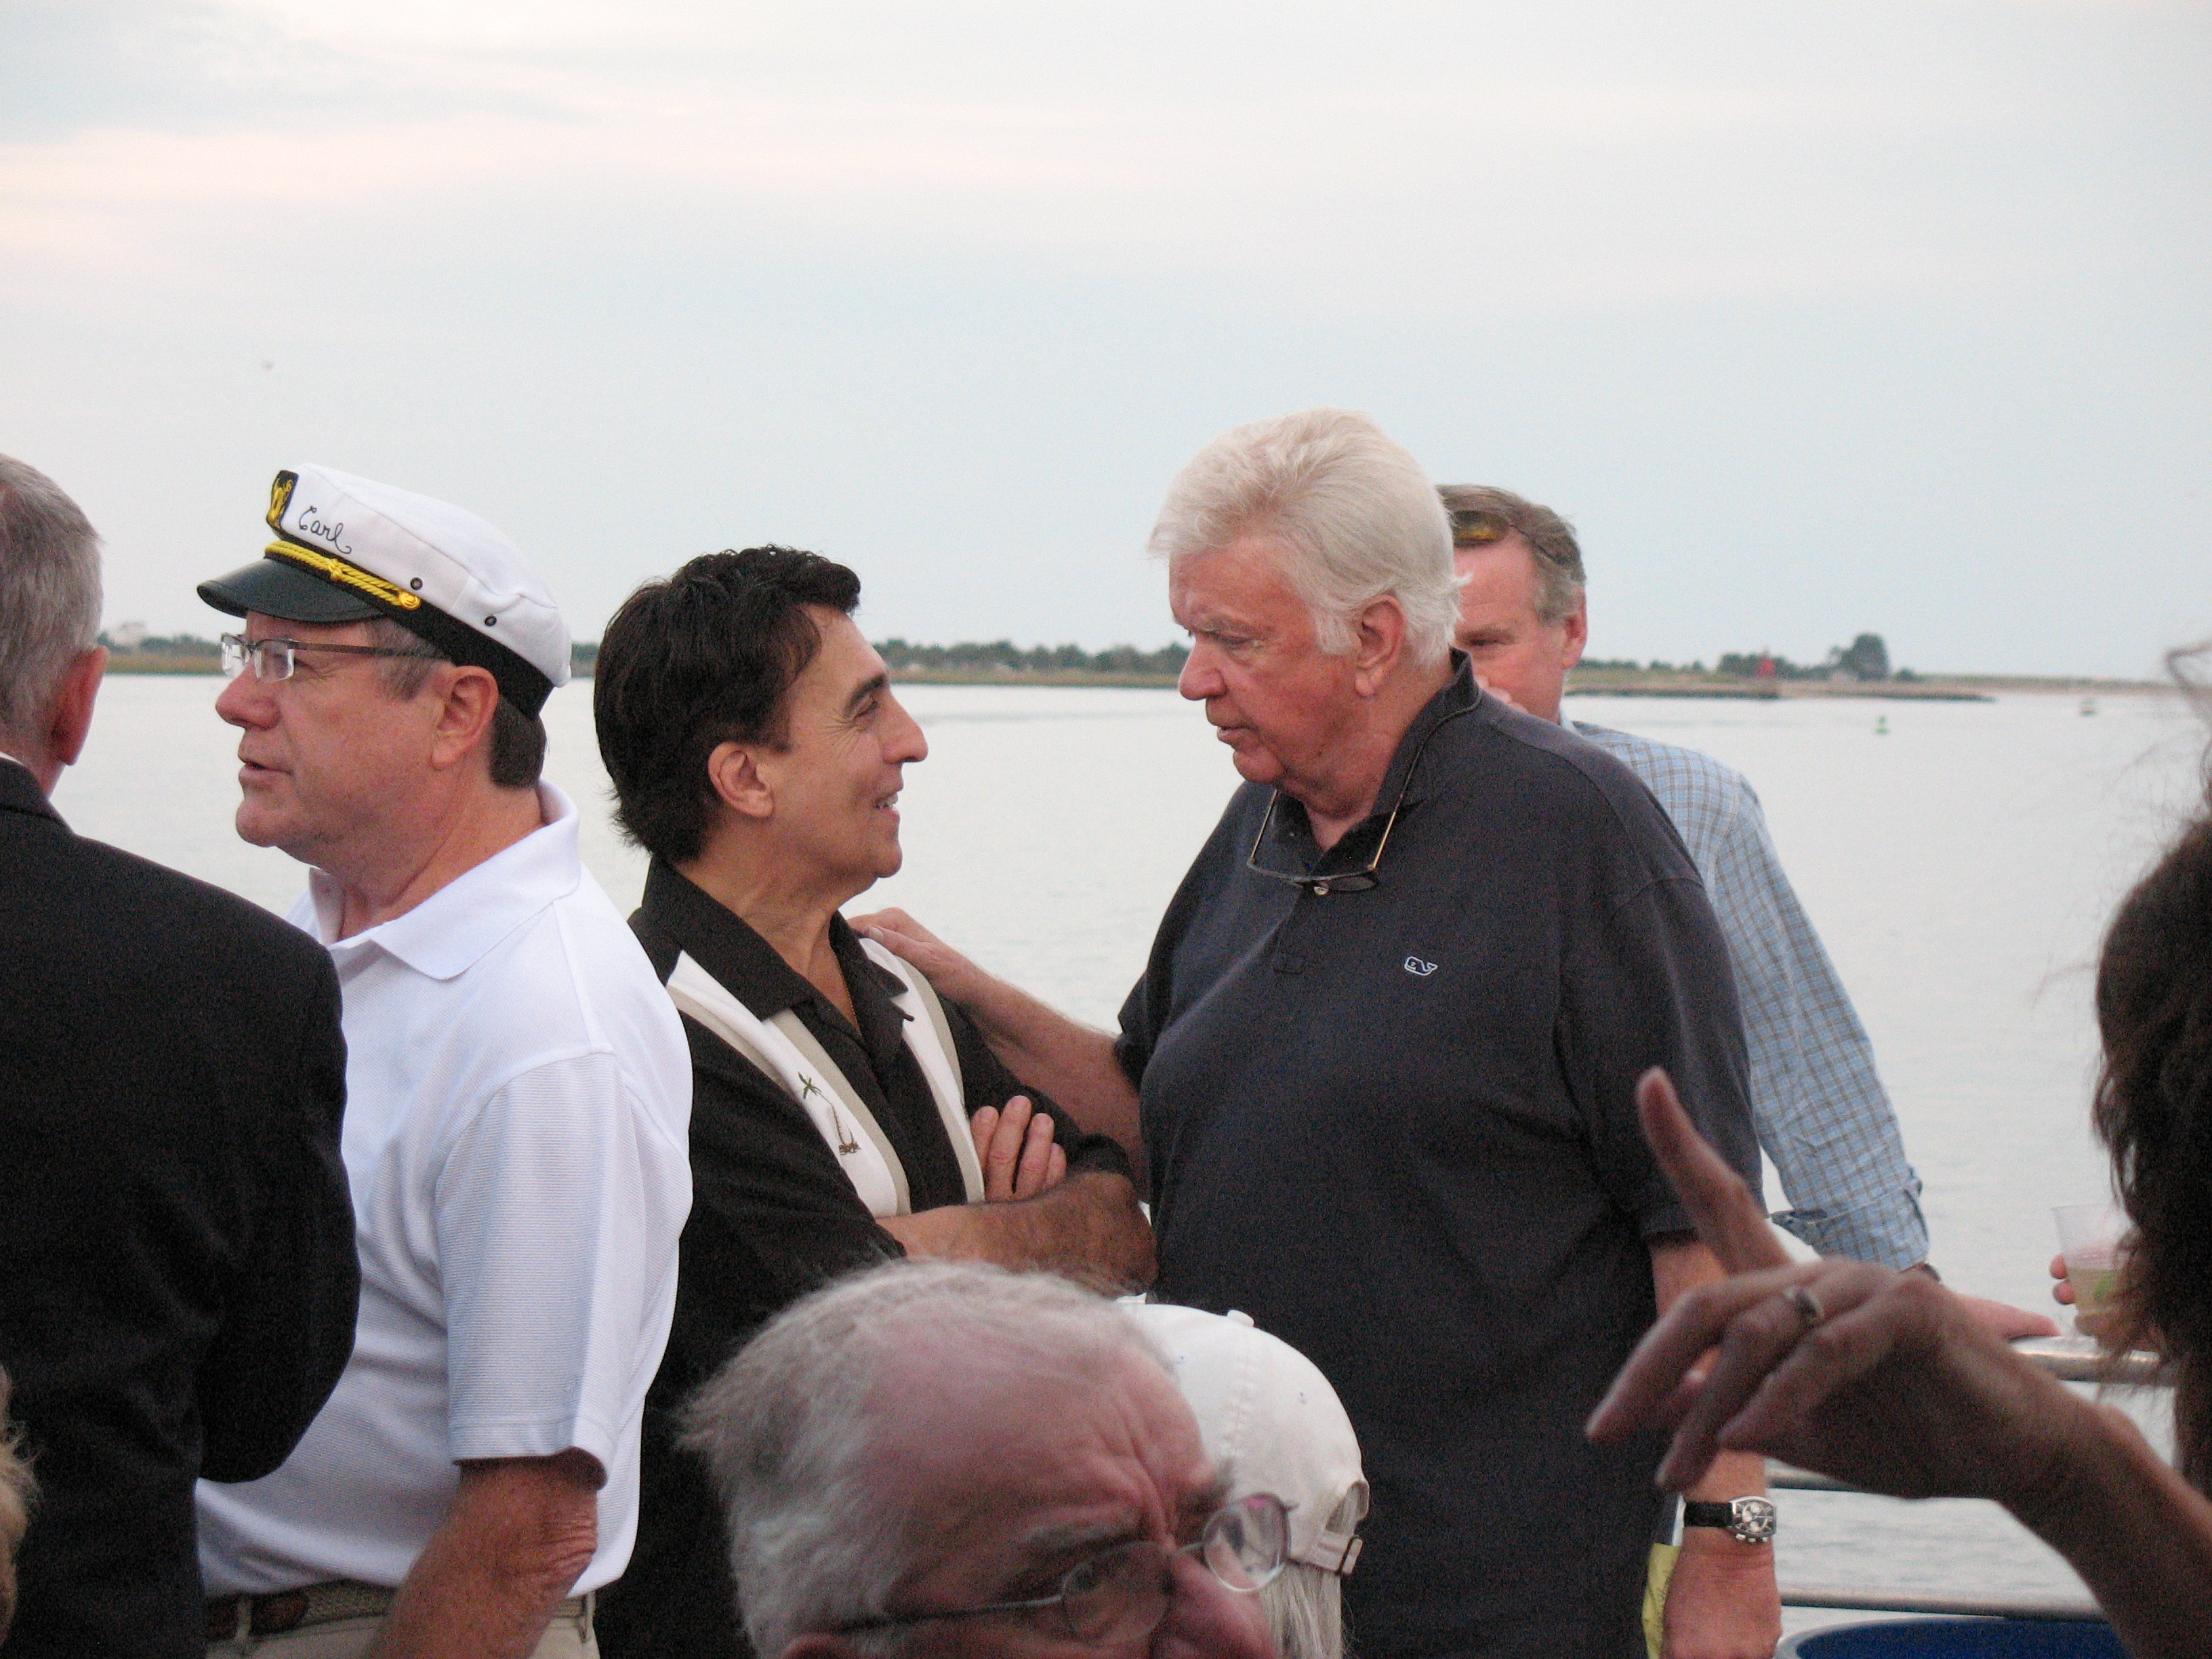 Rico meets Radio Legend Dick Robertson with Captain Carl fdrom WNBP